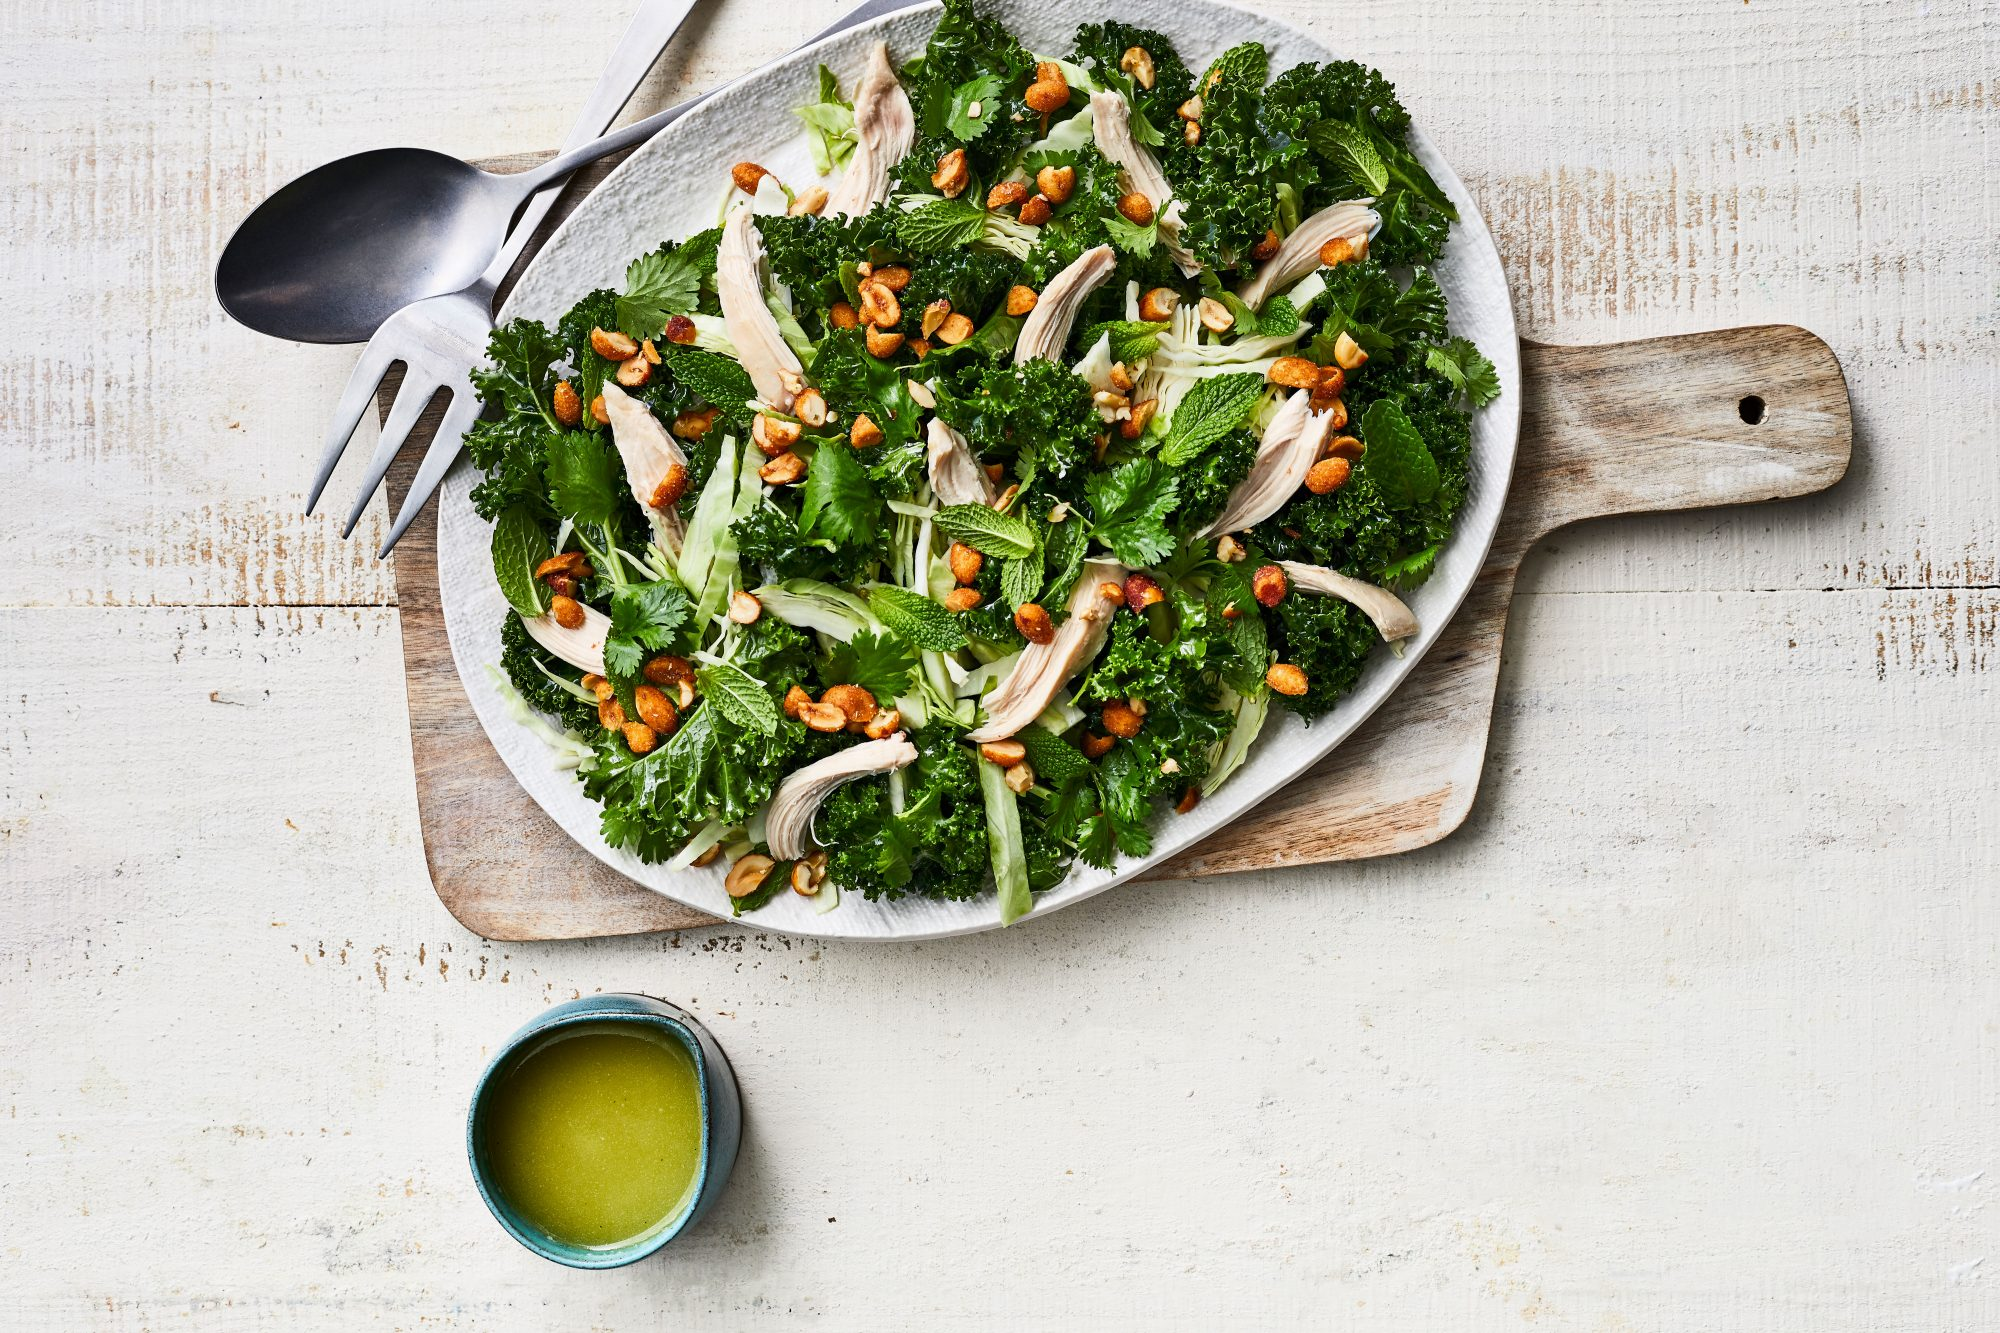 Kale-and-Chicken Salad with Jalapeño-Lime Dressing